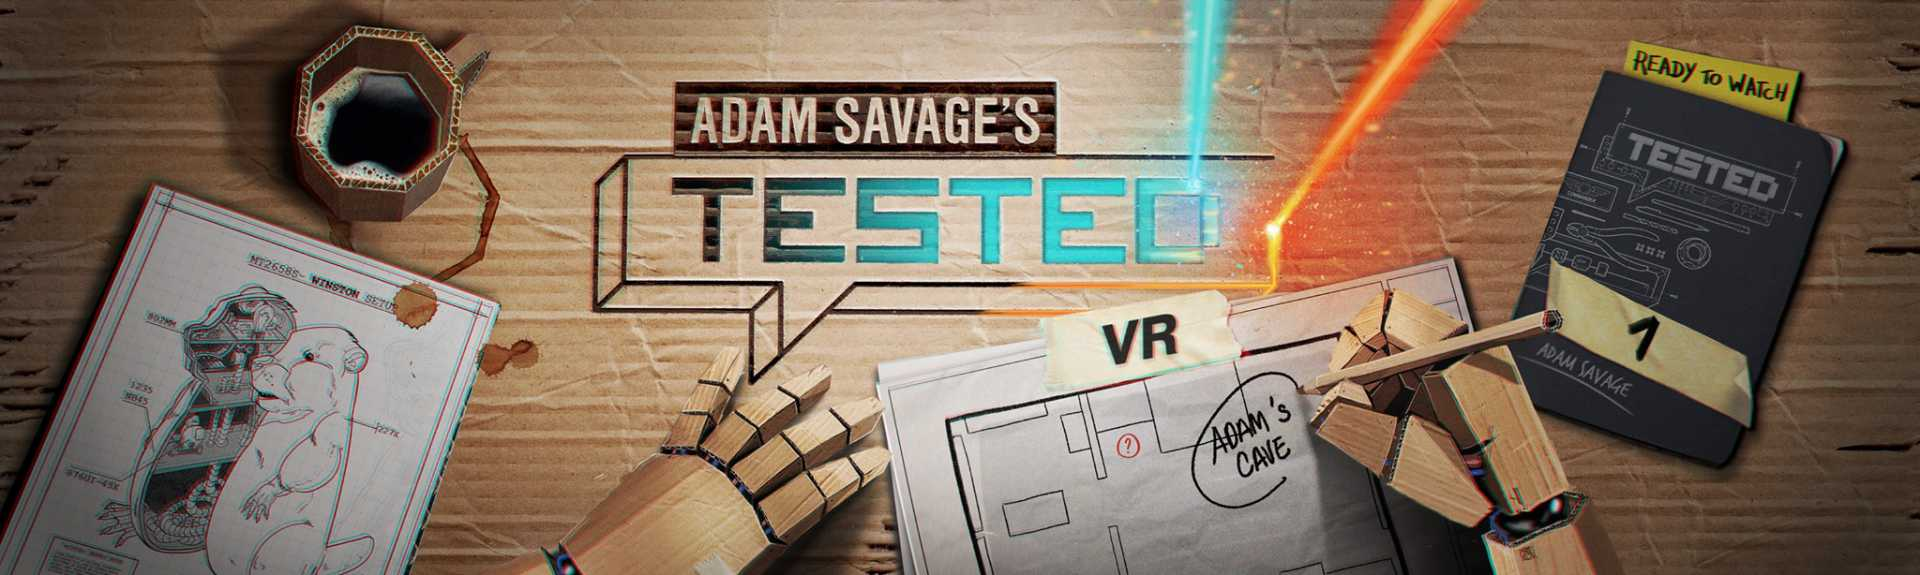 Adam Savage's Tested VR